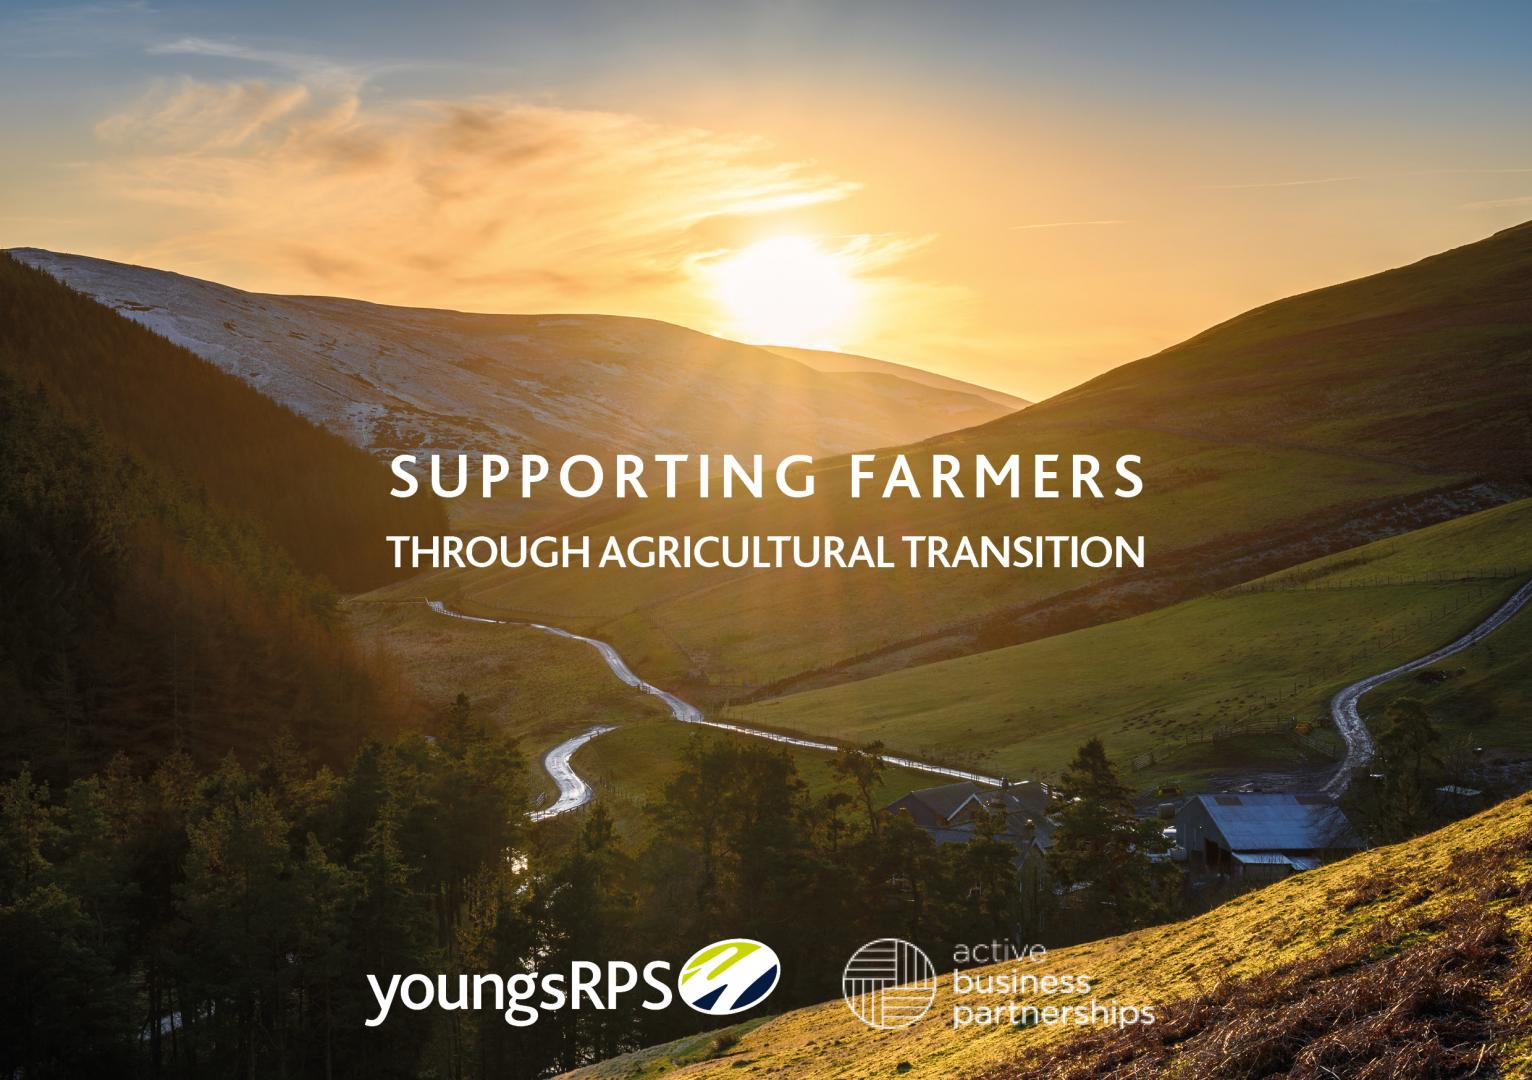 Supporting farmers through agricultural transition